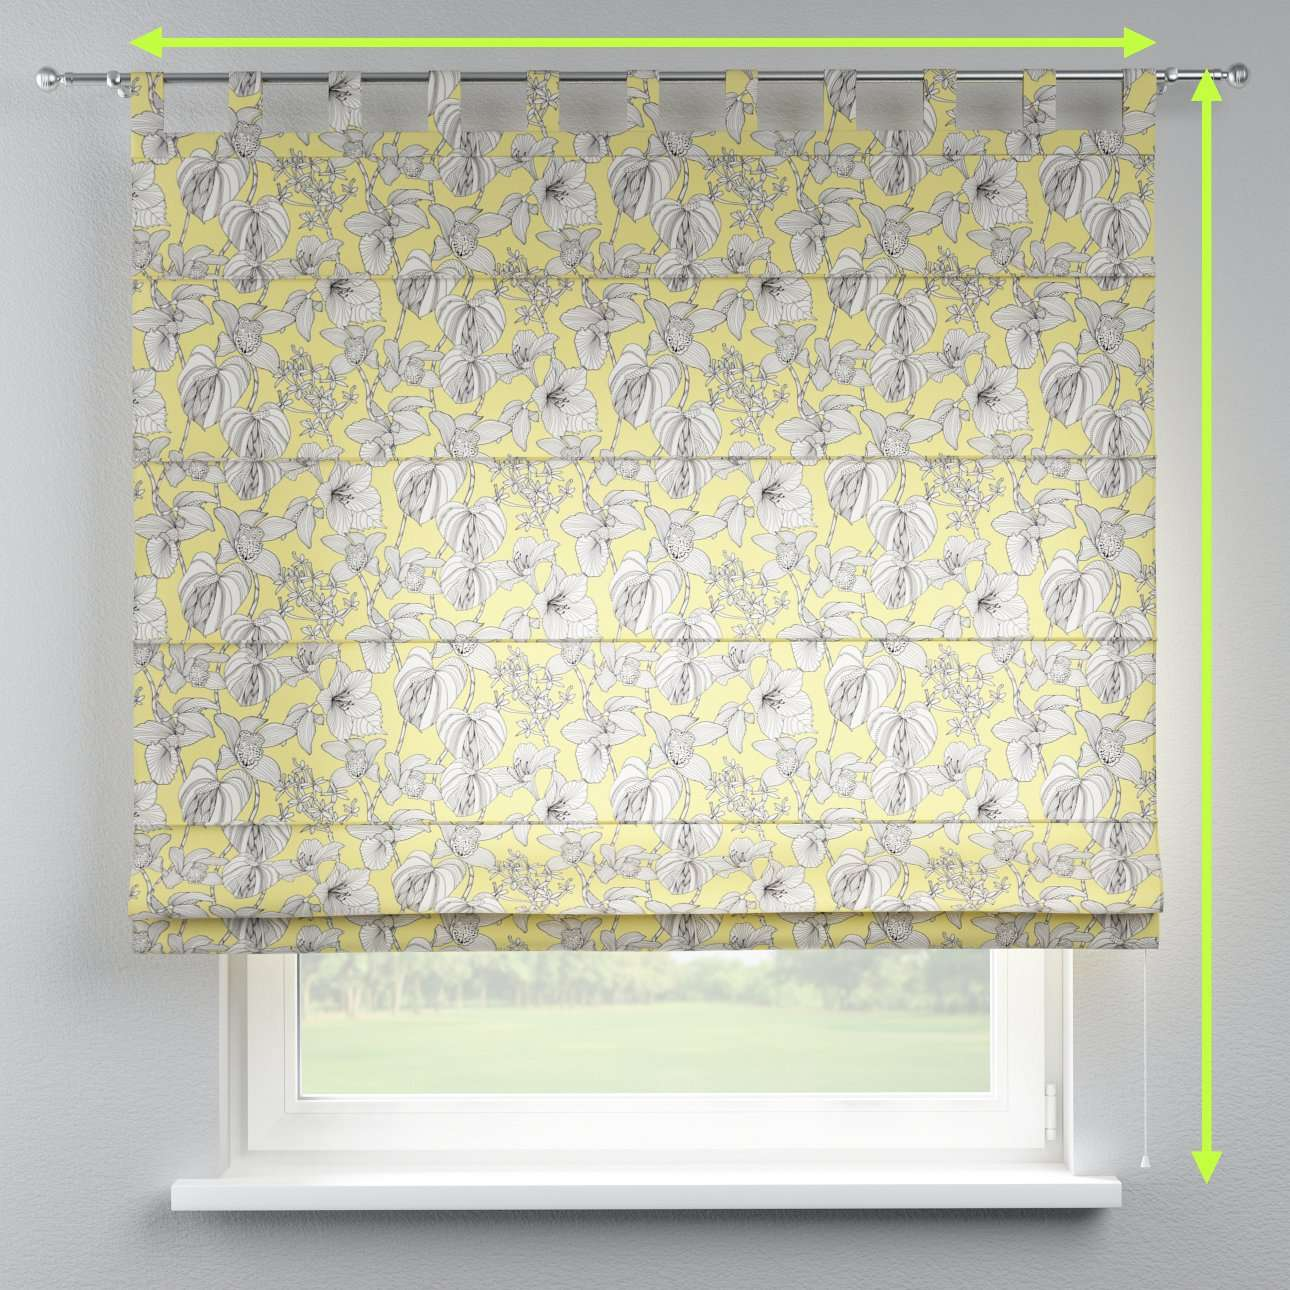 Verona tab top roman blind in collection Brooklyn, fabric: 137-78